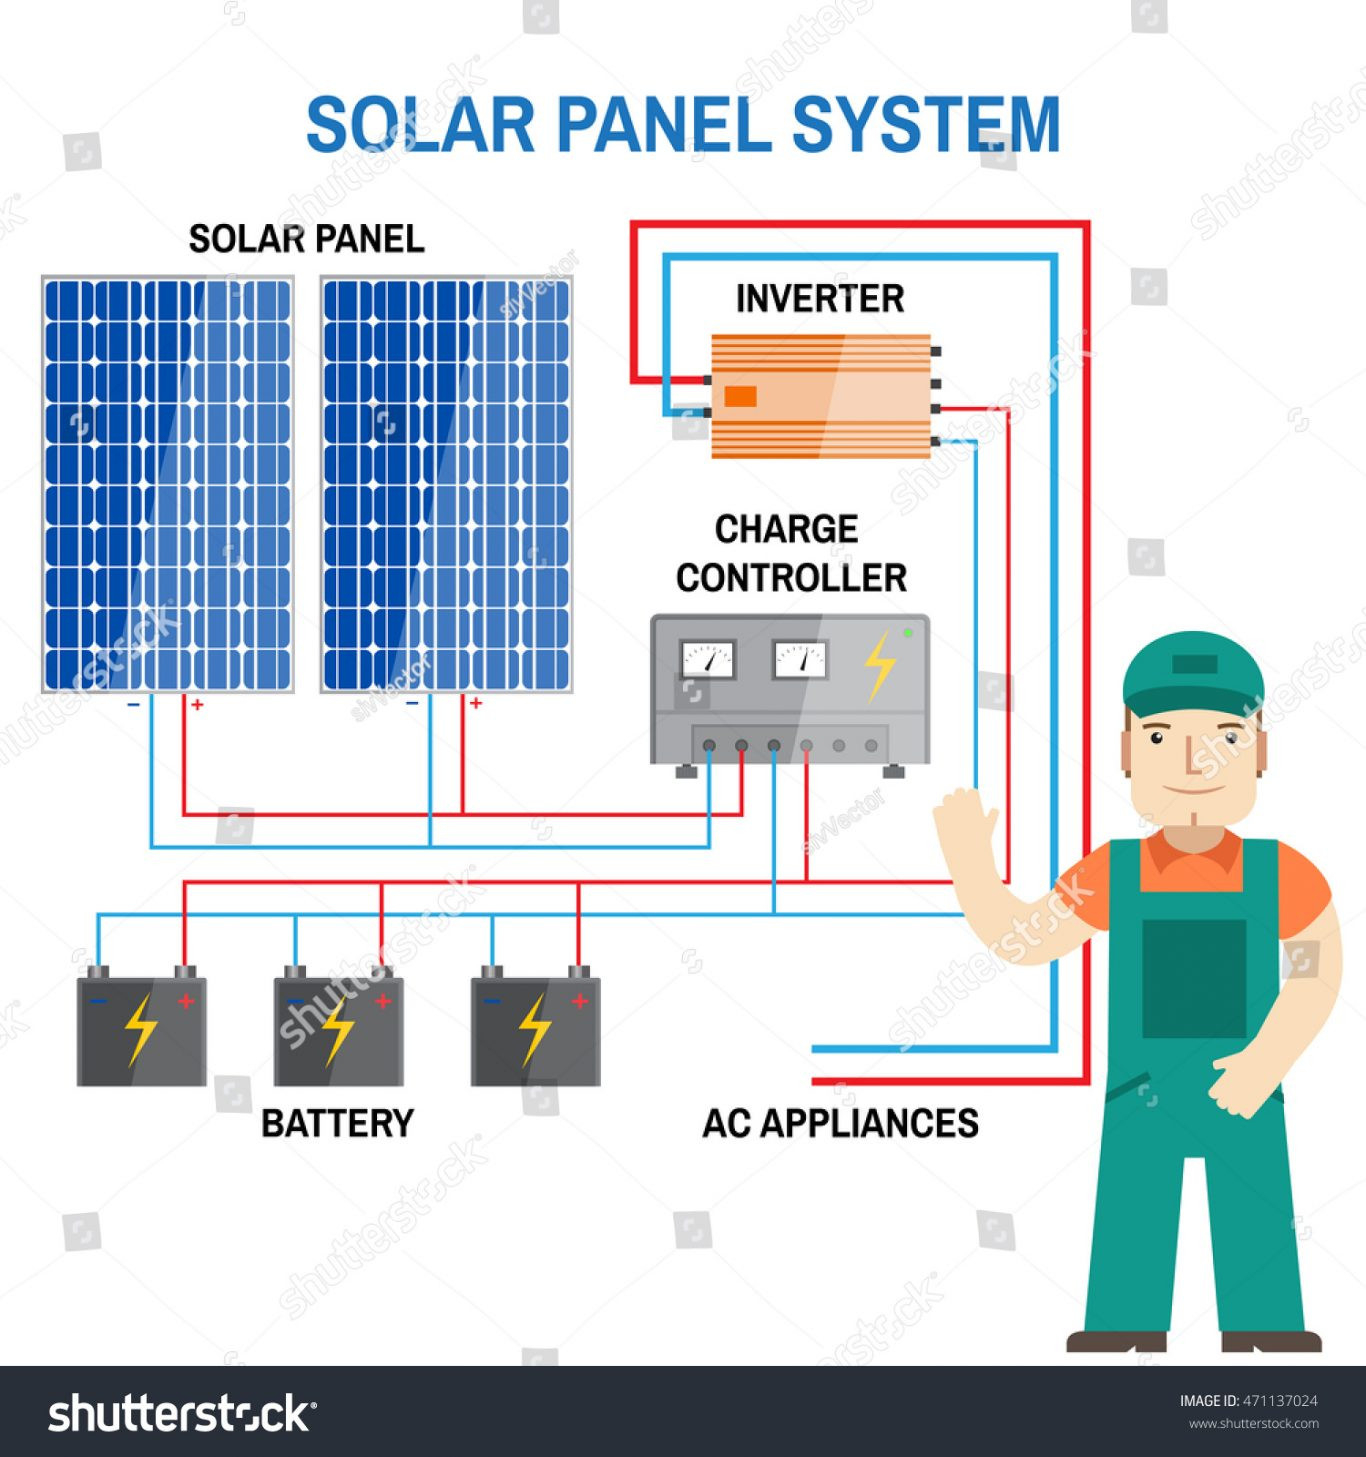 solar panel wiring diagram pdf Collection-solar array wiring diagram fresh solar panel charge controller wiring diagram of solar array wiring diagram 14-c